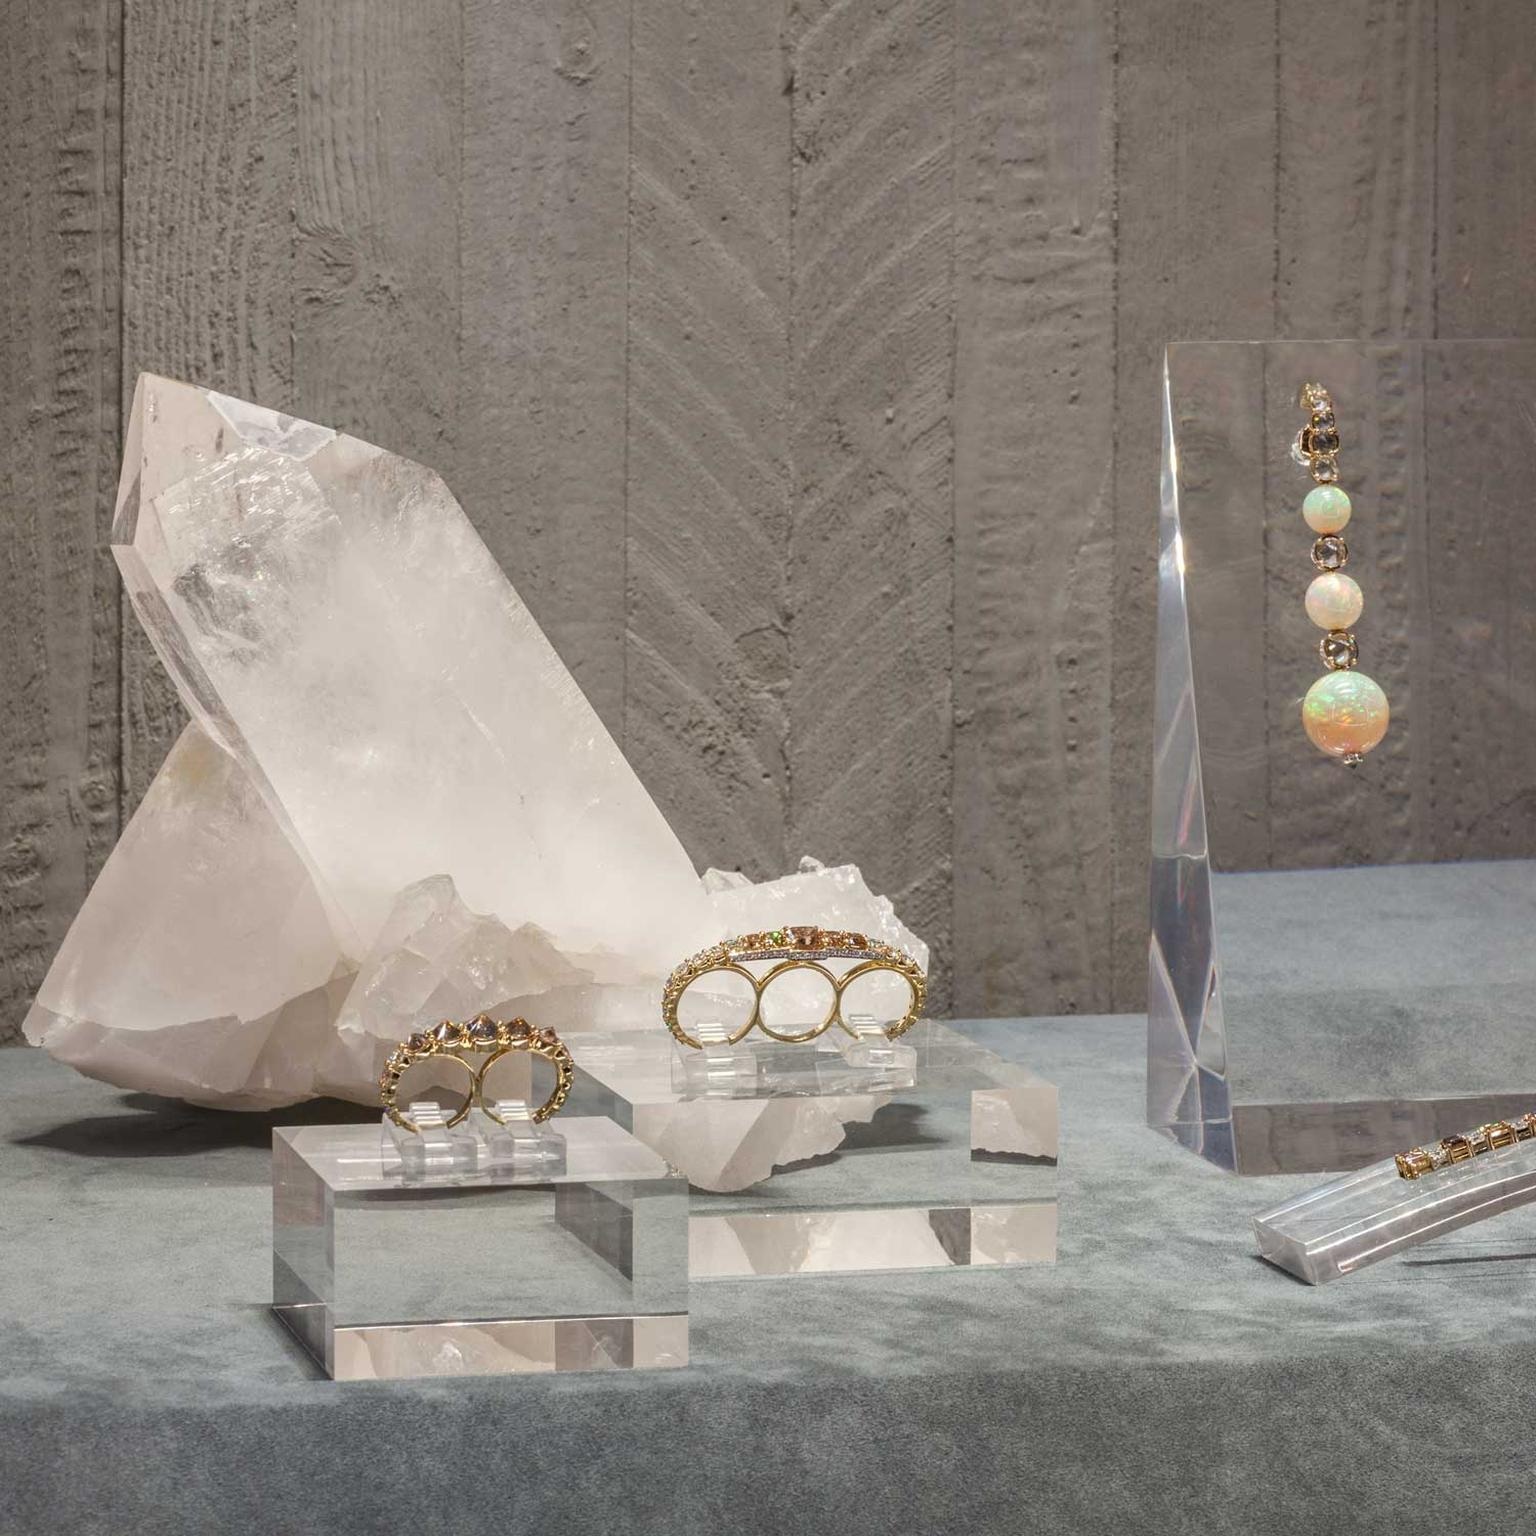 Jewels on display at Ara Vartanian's boutique in London